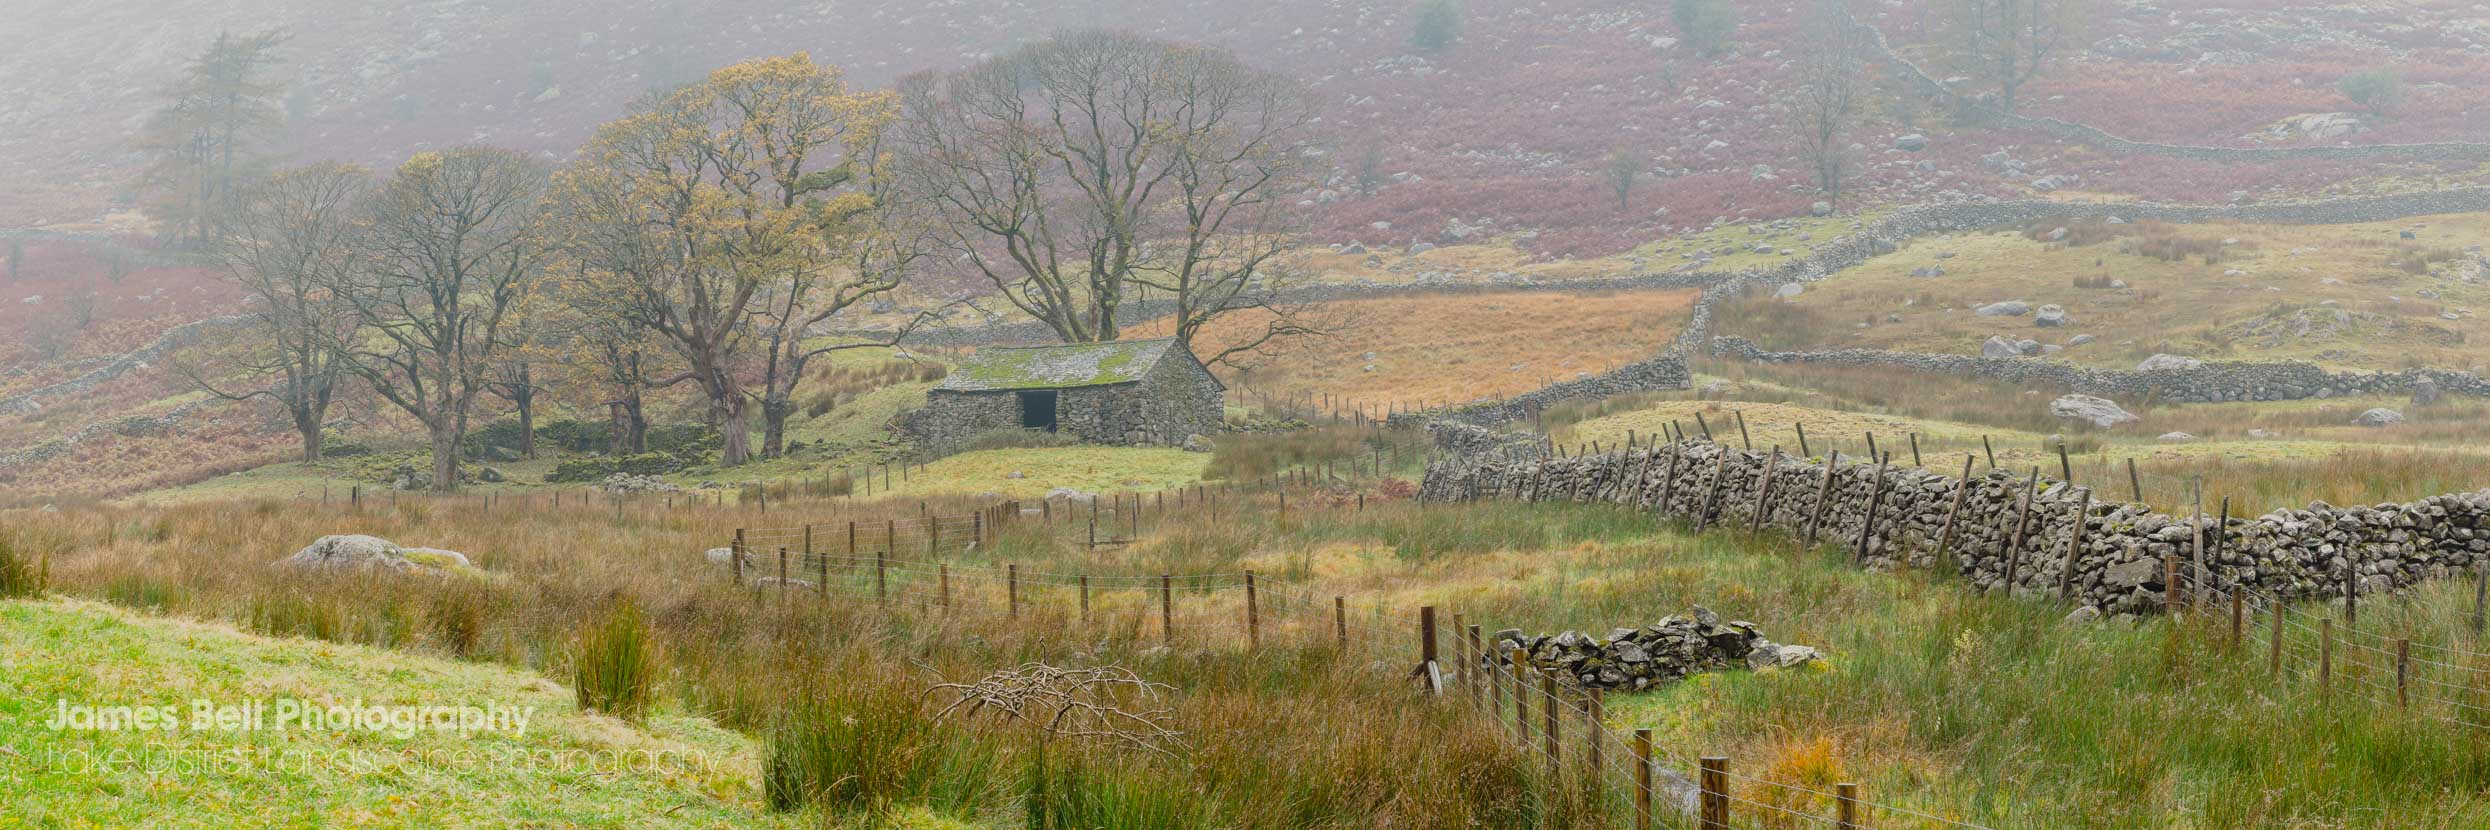 A Lake District Barn in Autumn